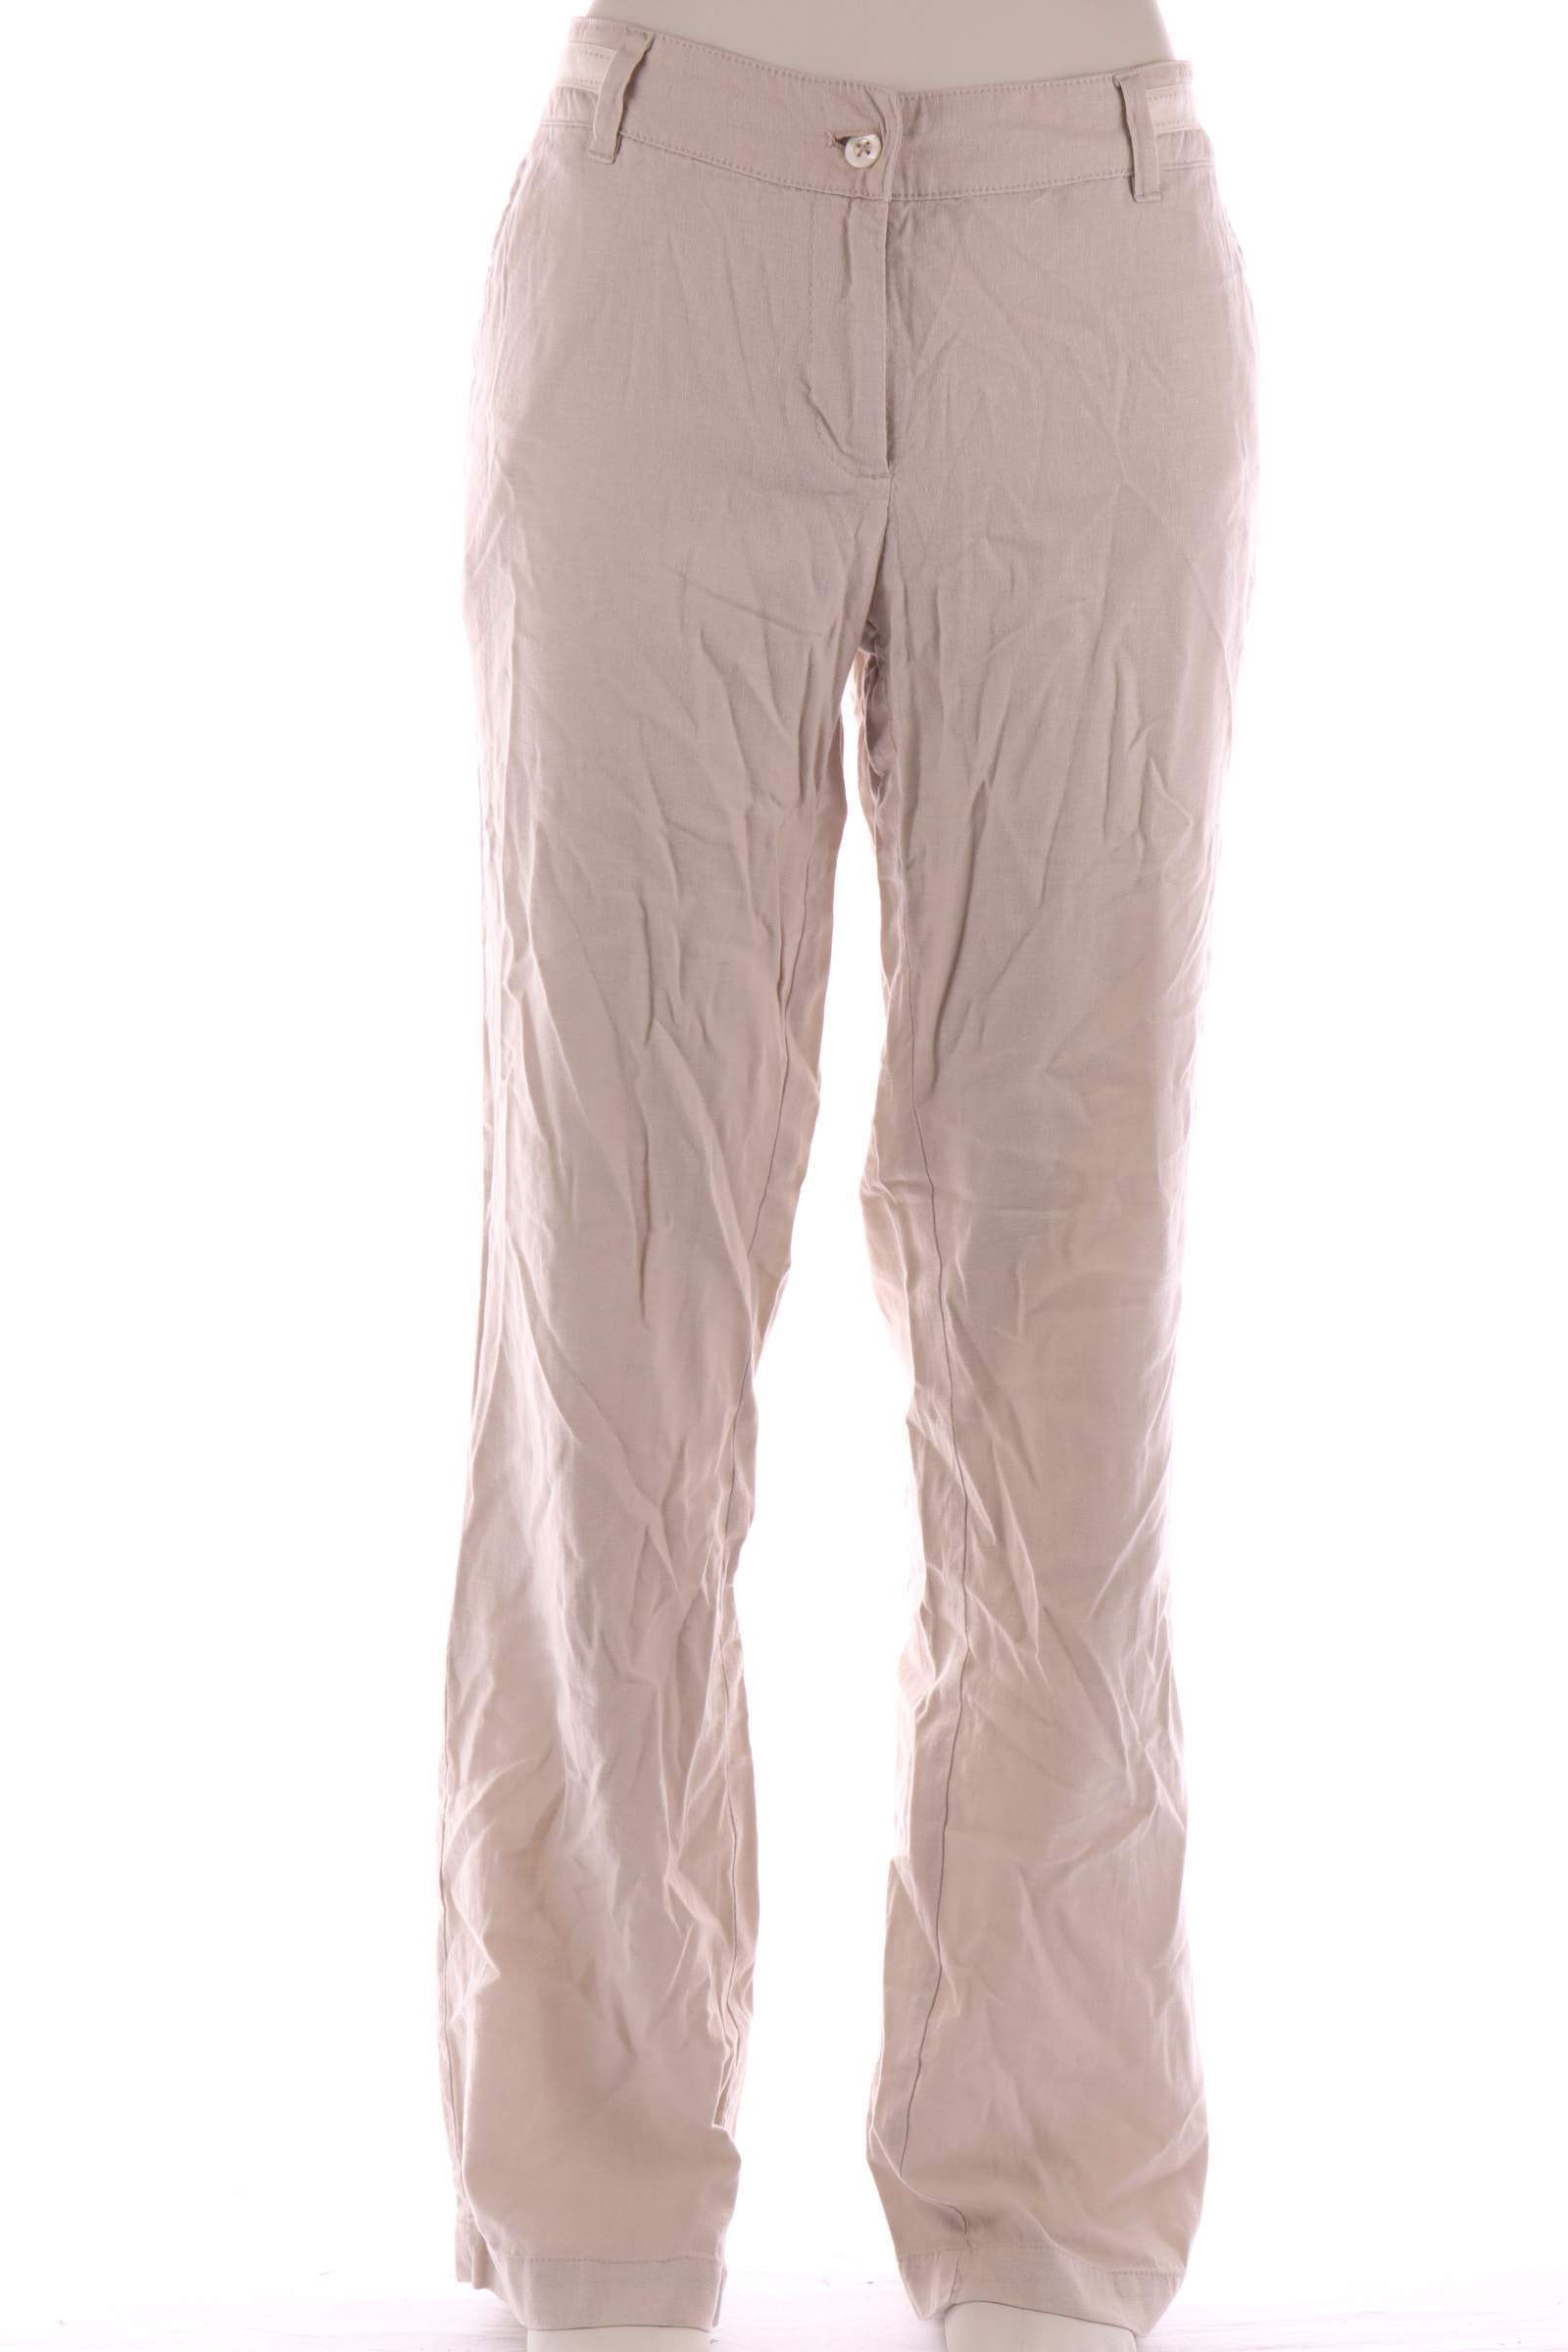 Mosaic Beige Pants - upty.store